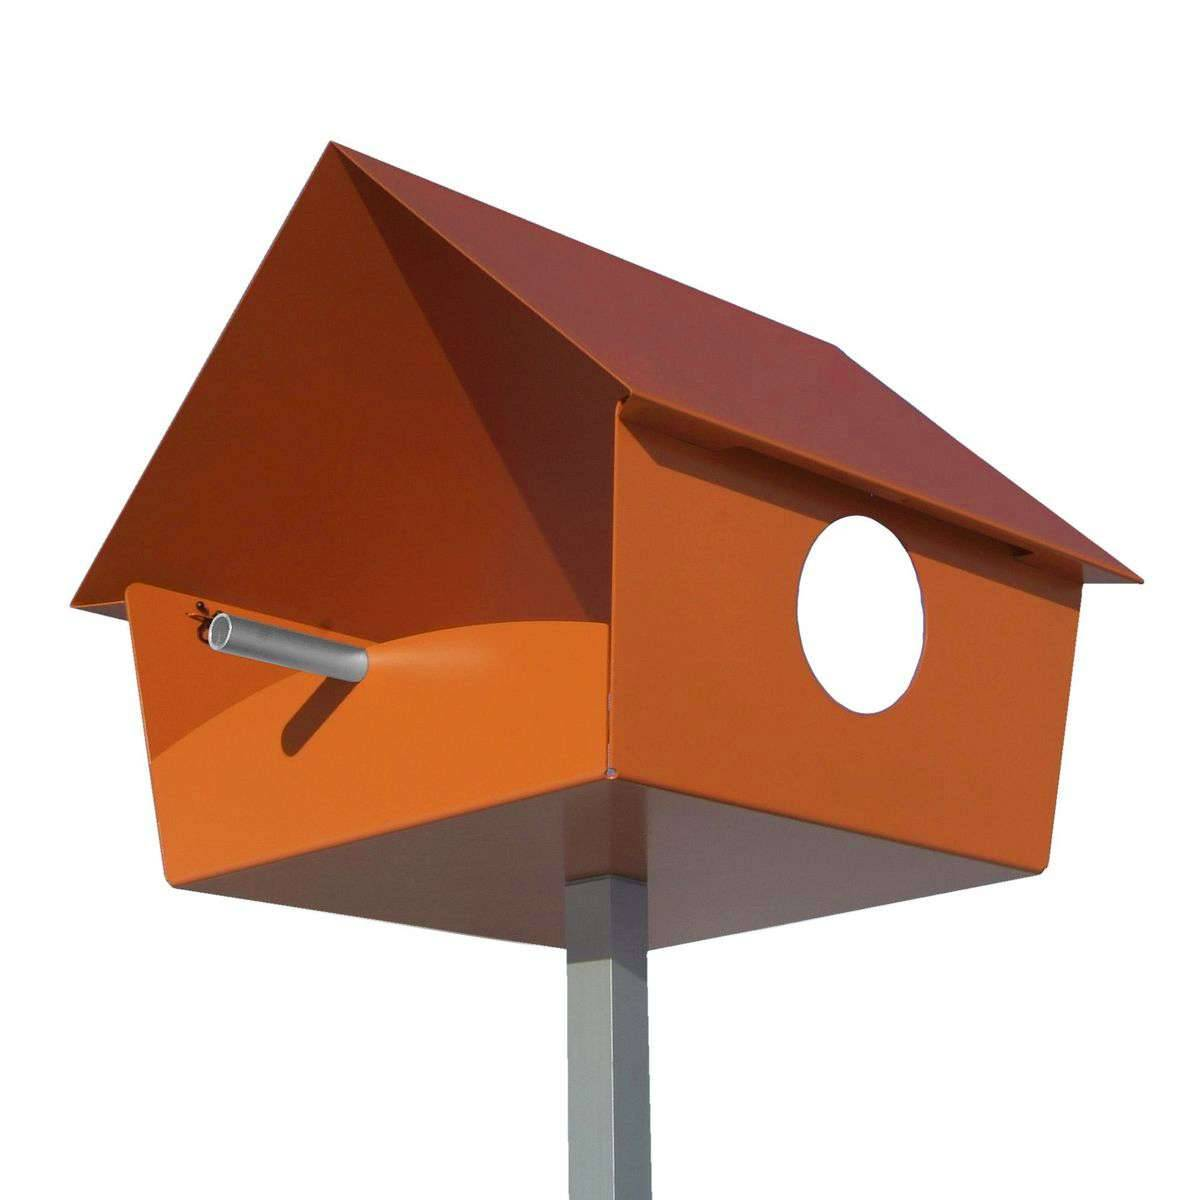 Radius Design Piep Show XXL Vogelhaus orange 529 c